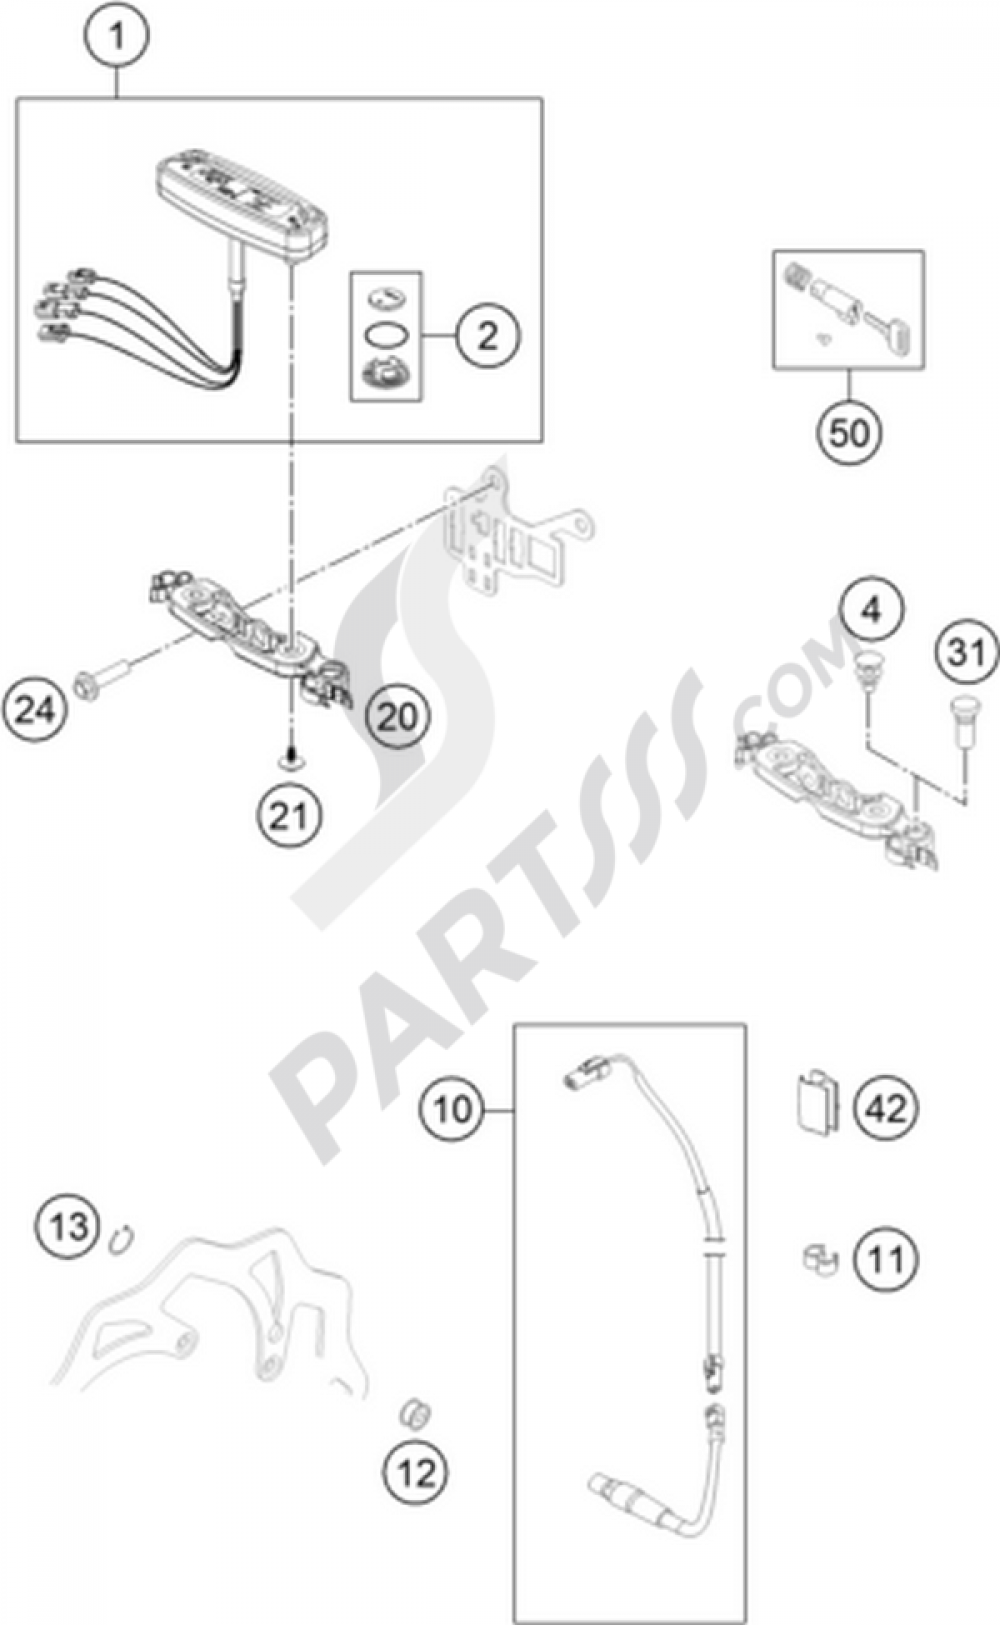 Ktm Freeride 250 Wiring Diagram Library 350